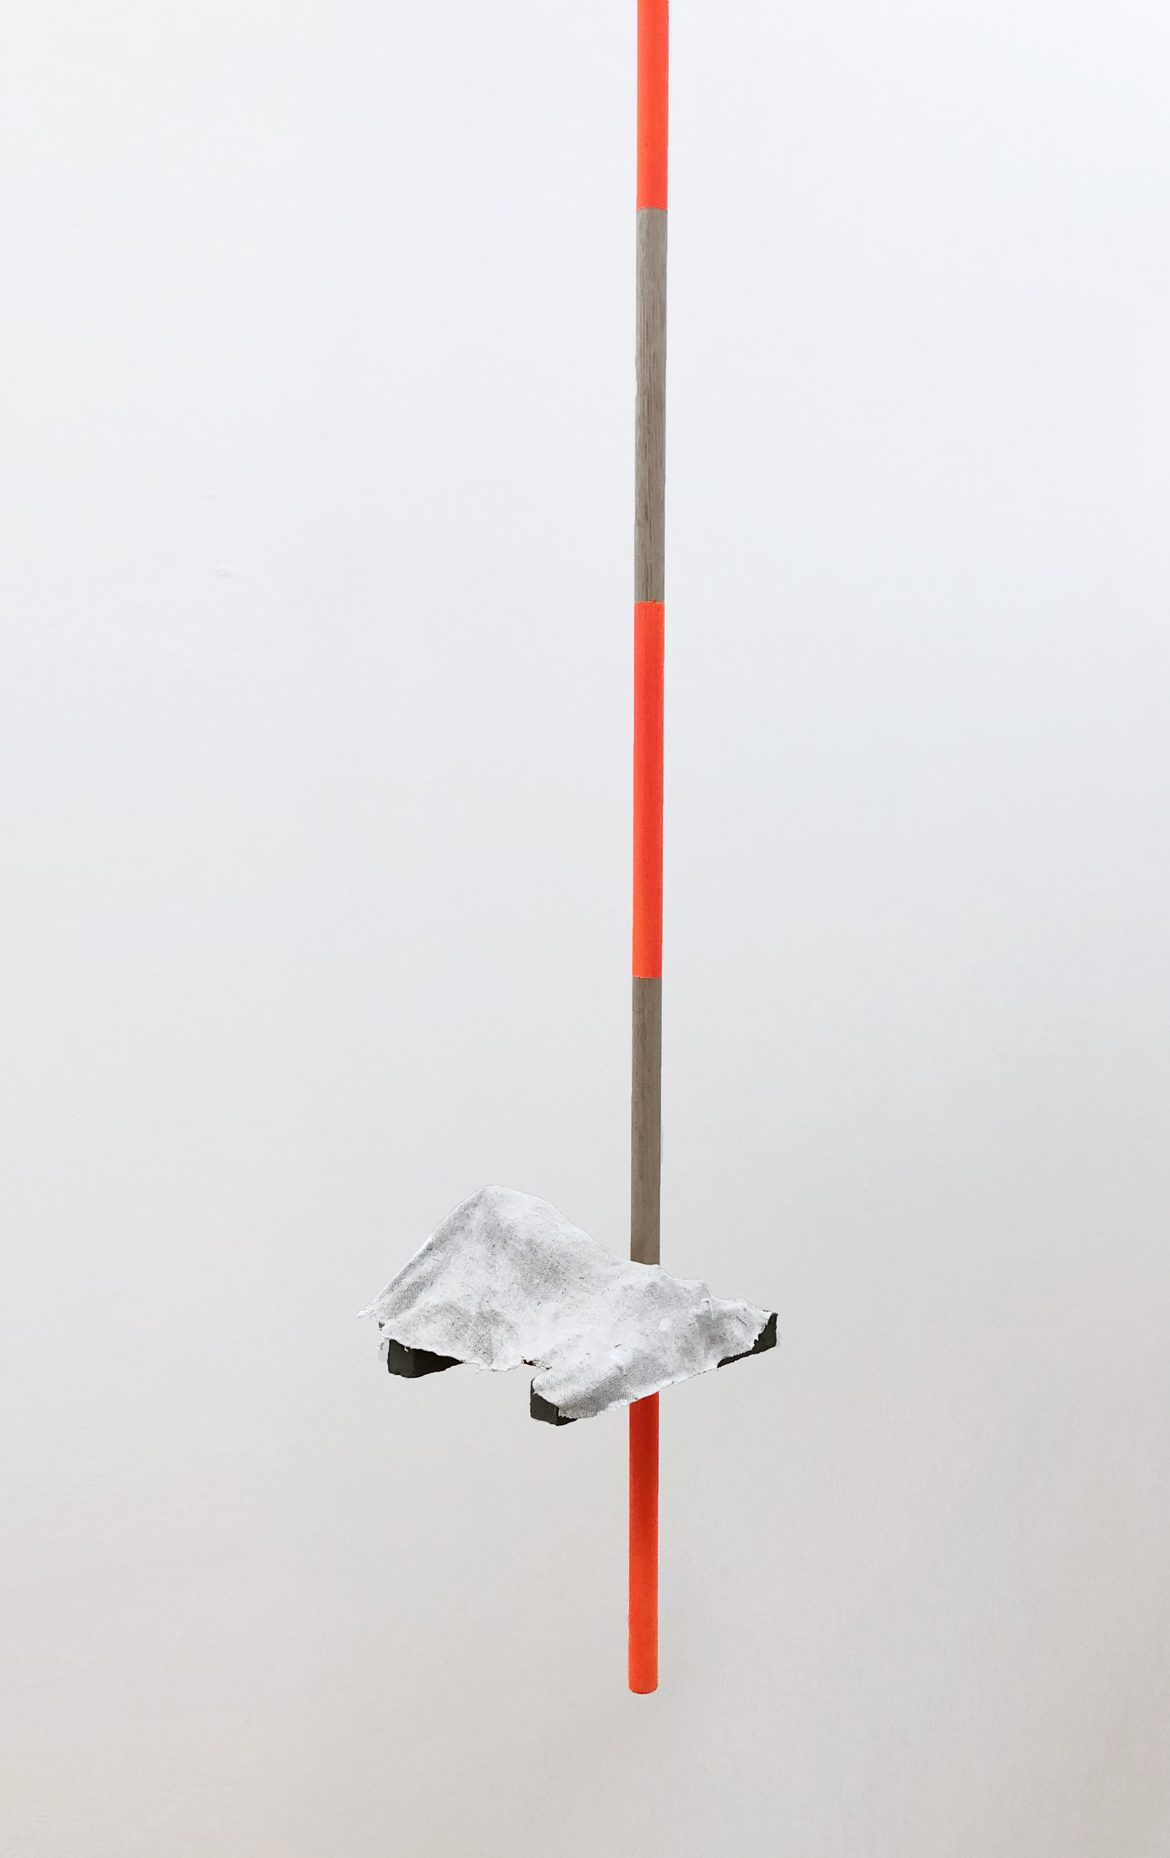 'Outrigger', 2019, oil and resin on linen, timber, 180 x 40 x 40cm